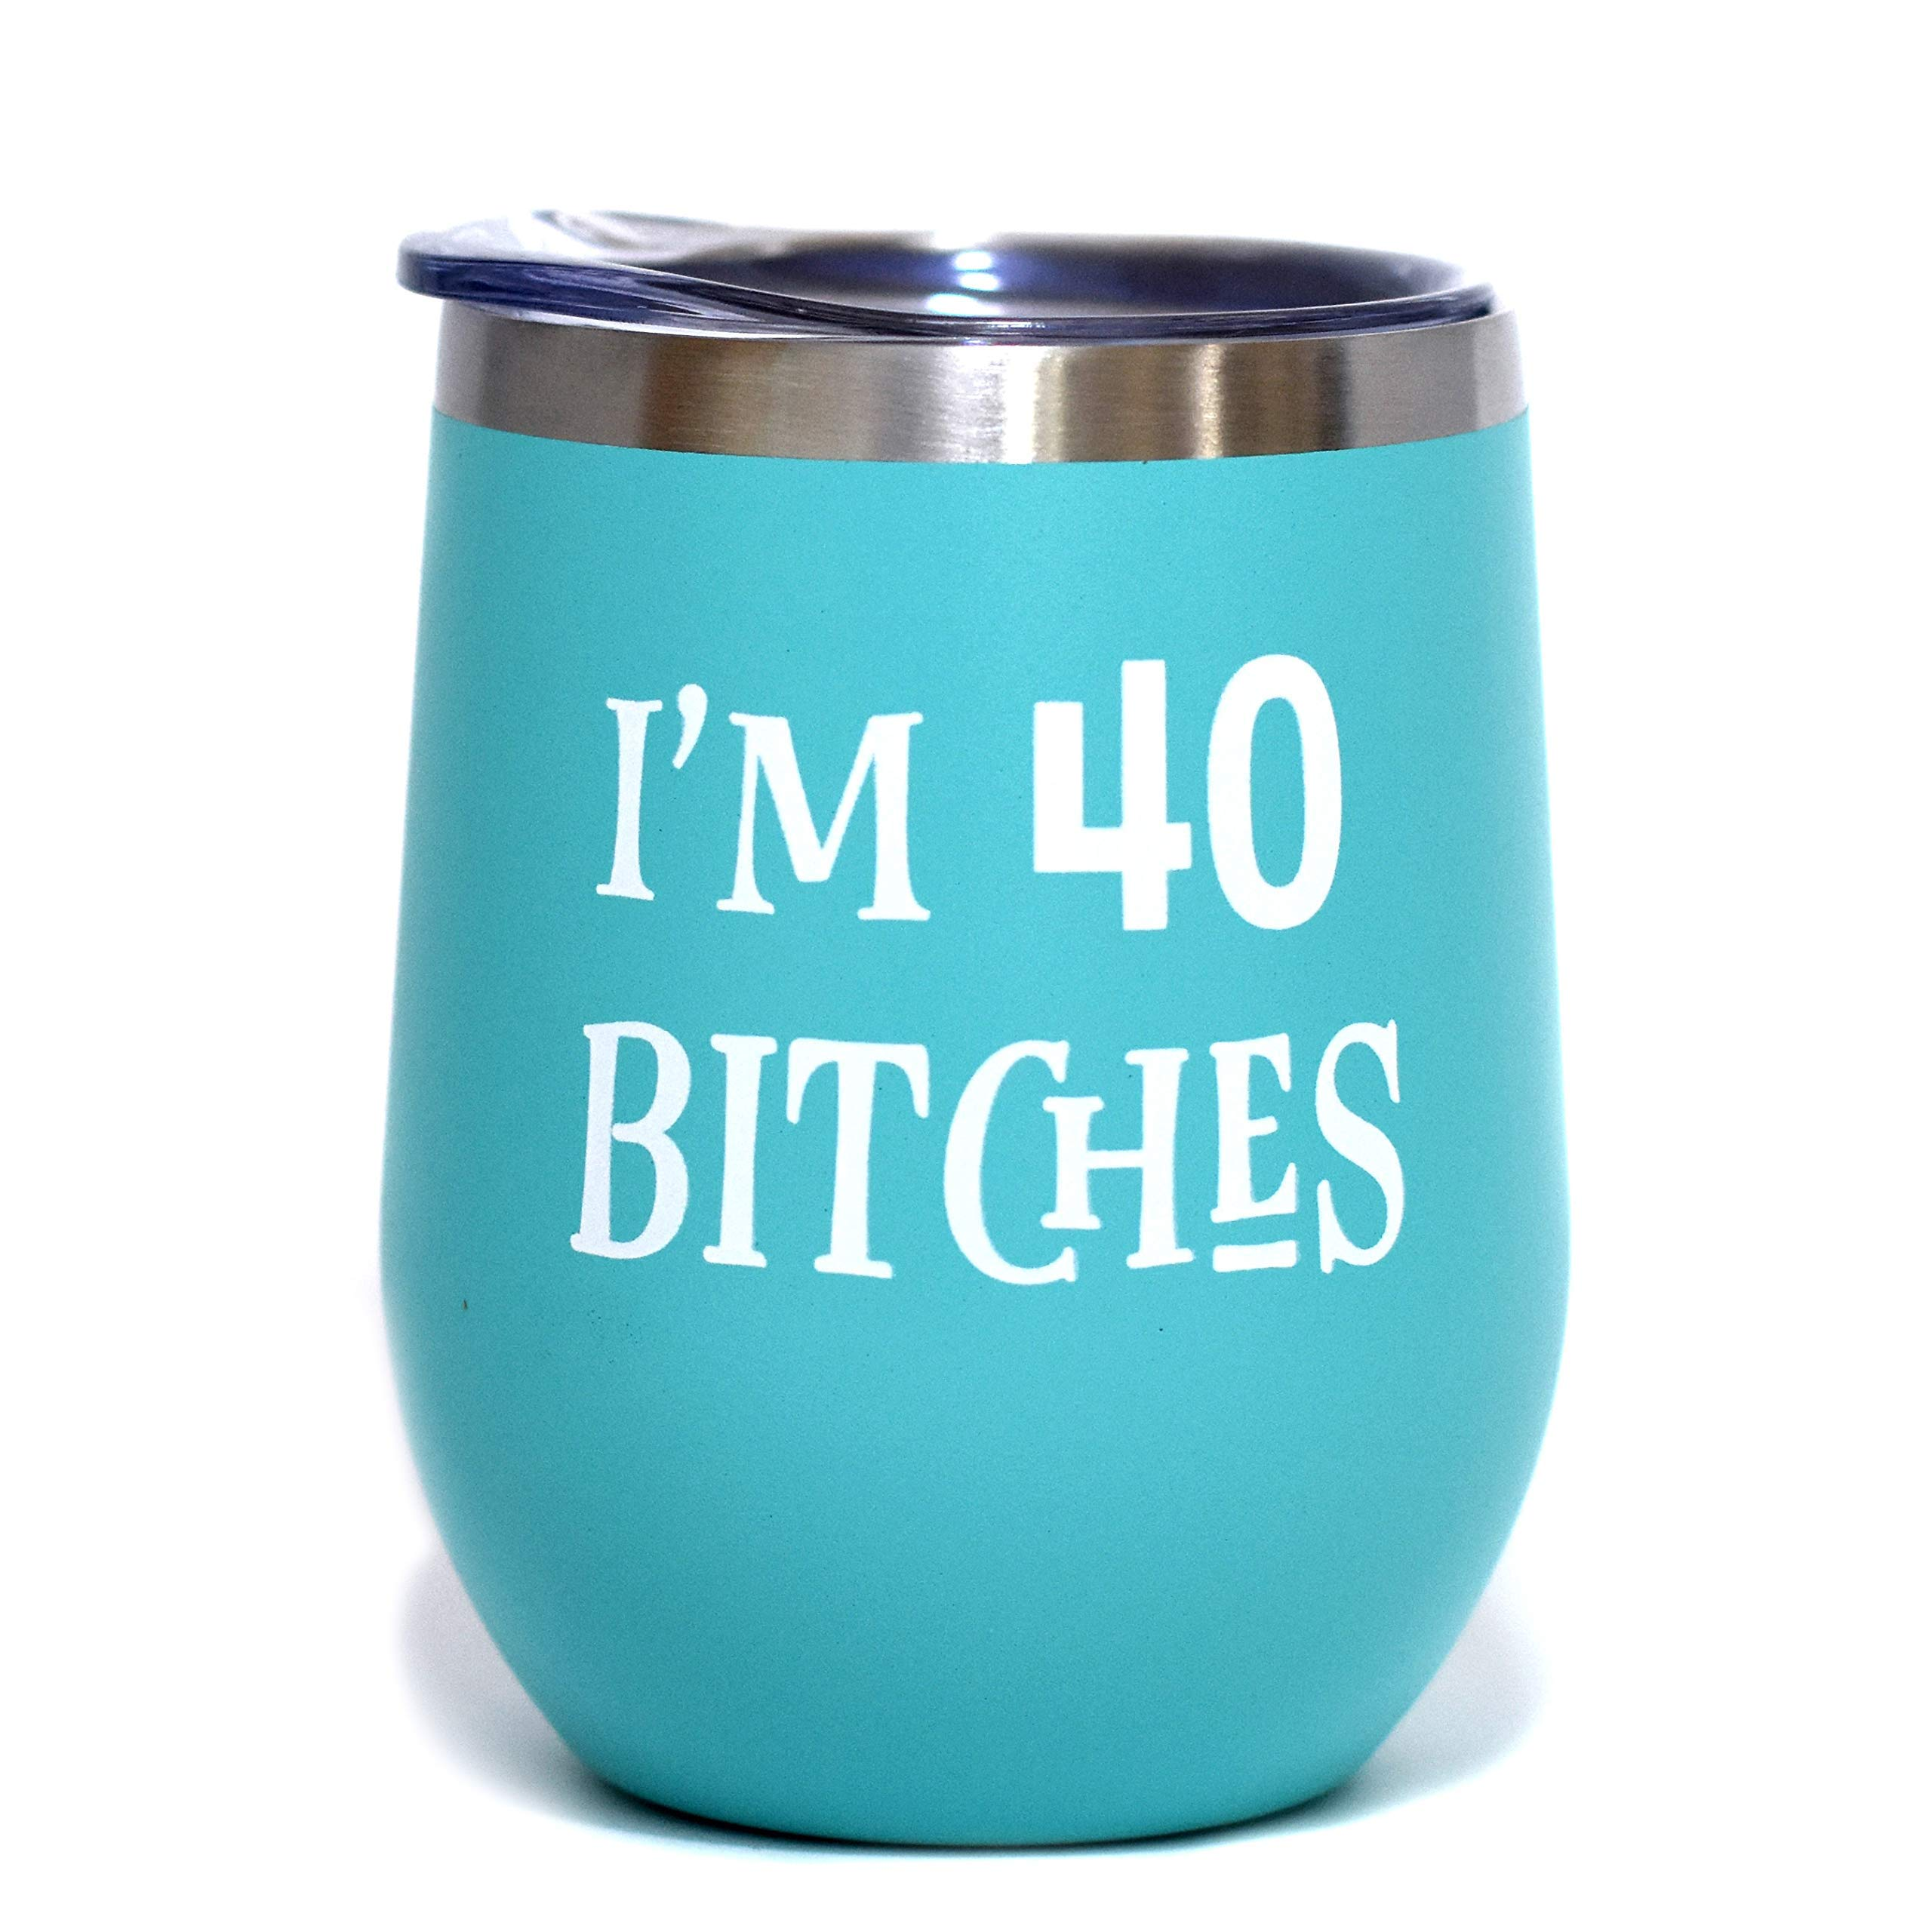 I'm 40 Bitches | 12 oz Stainless Steel Insulated Wine Tumbler Sippy Cup with Lid - Funny 40th Birthday Gift For Women (Mint, White)